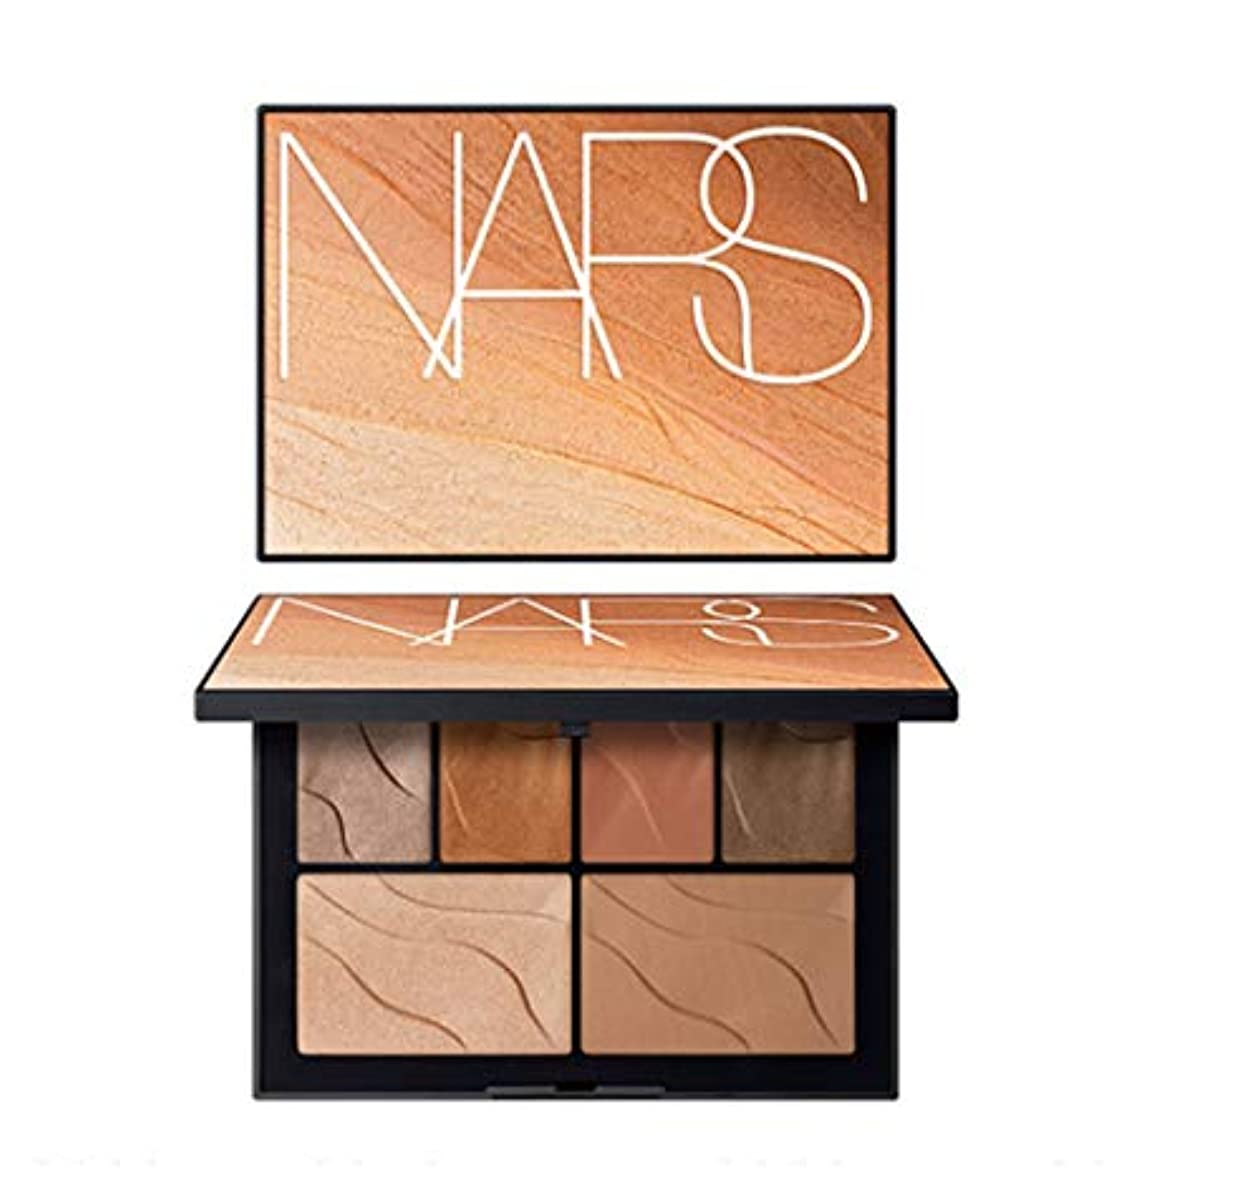 NARS(ナーズ)[2019 Summer Color Collection] Face Palette HEAT OF THE NIGHT #summer lights(並行輸入品)